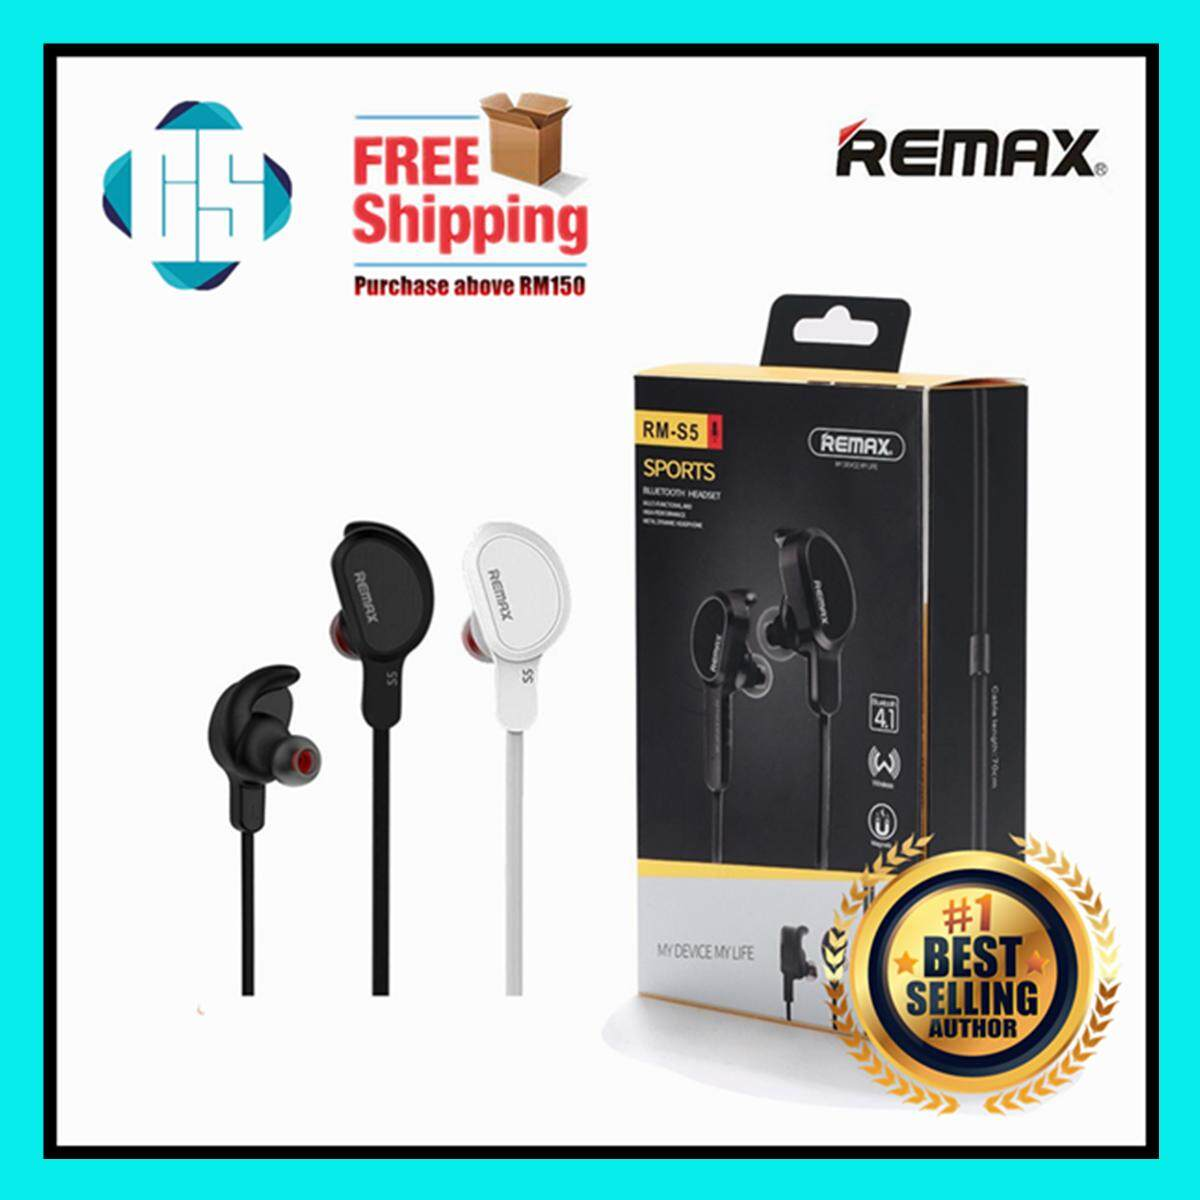 Remax Headphones Headsets Price In Malaysia Best Earphone Rm 501 With Microphone Headset Handsfree 100 Original Rb S5 Sport Bluetooth Wireless Ear Headphone